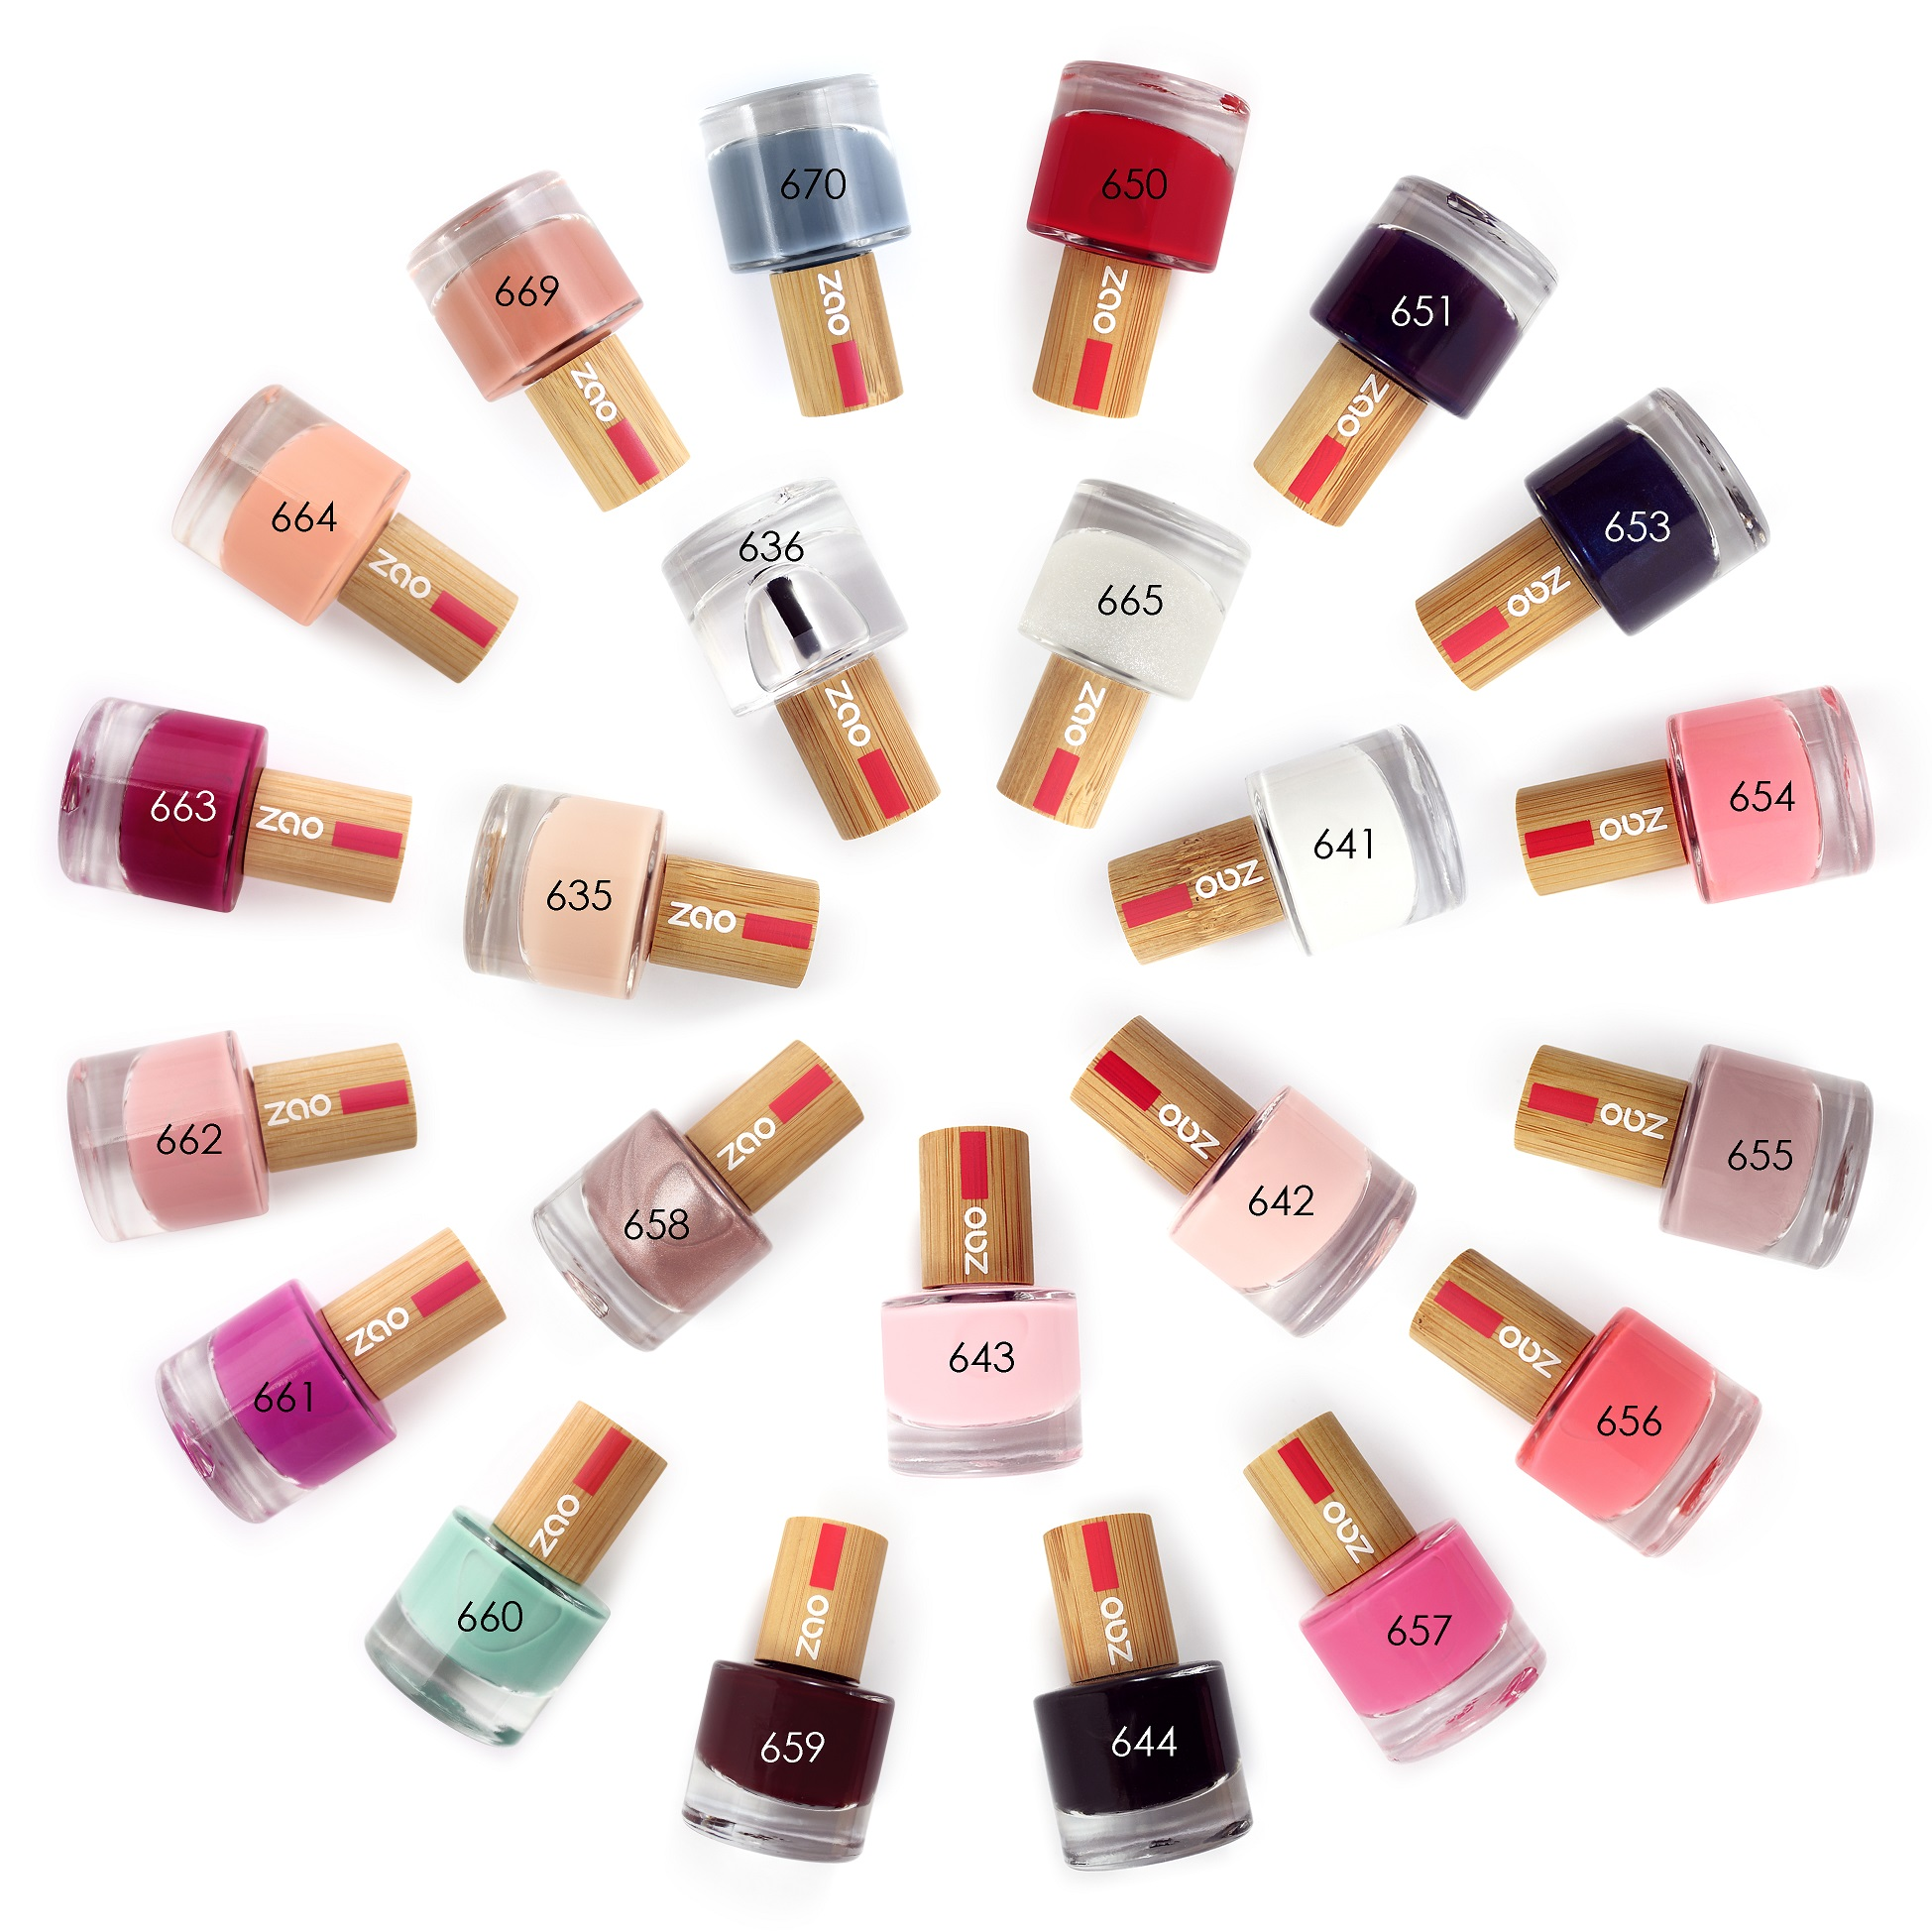 Vernis_a_ongles_Zao_chez_AM-Cosmetiques.jpg